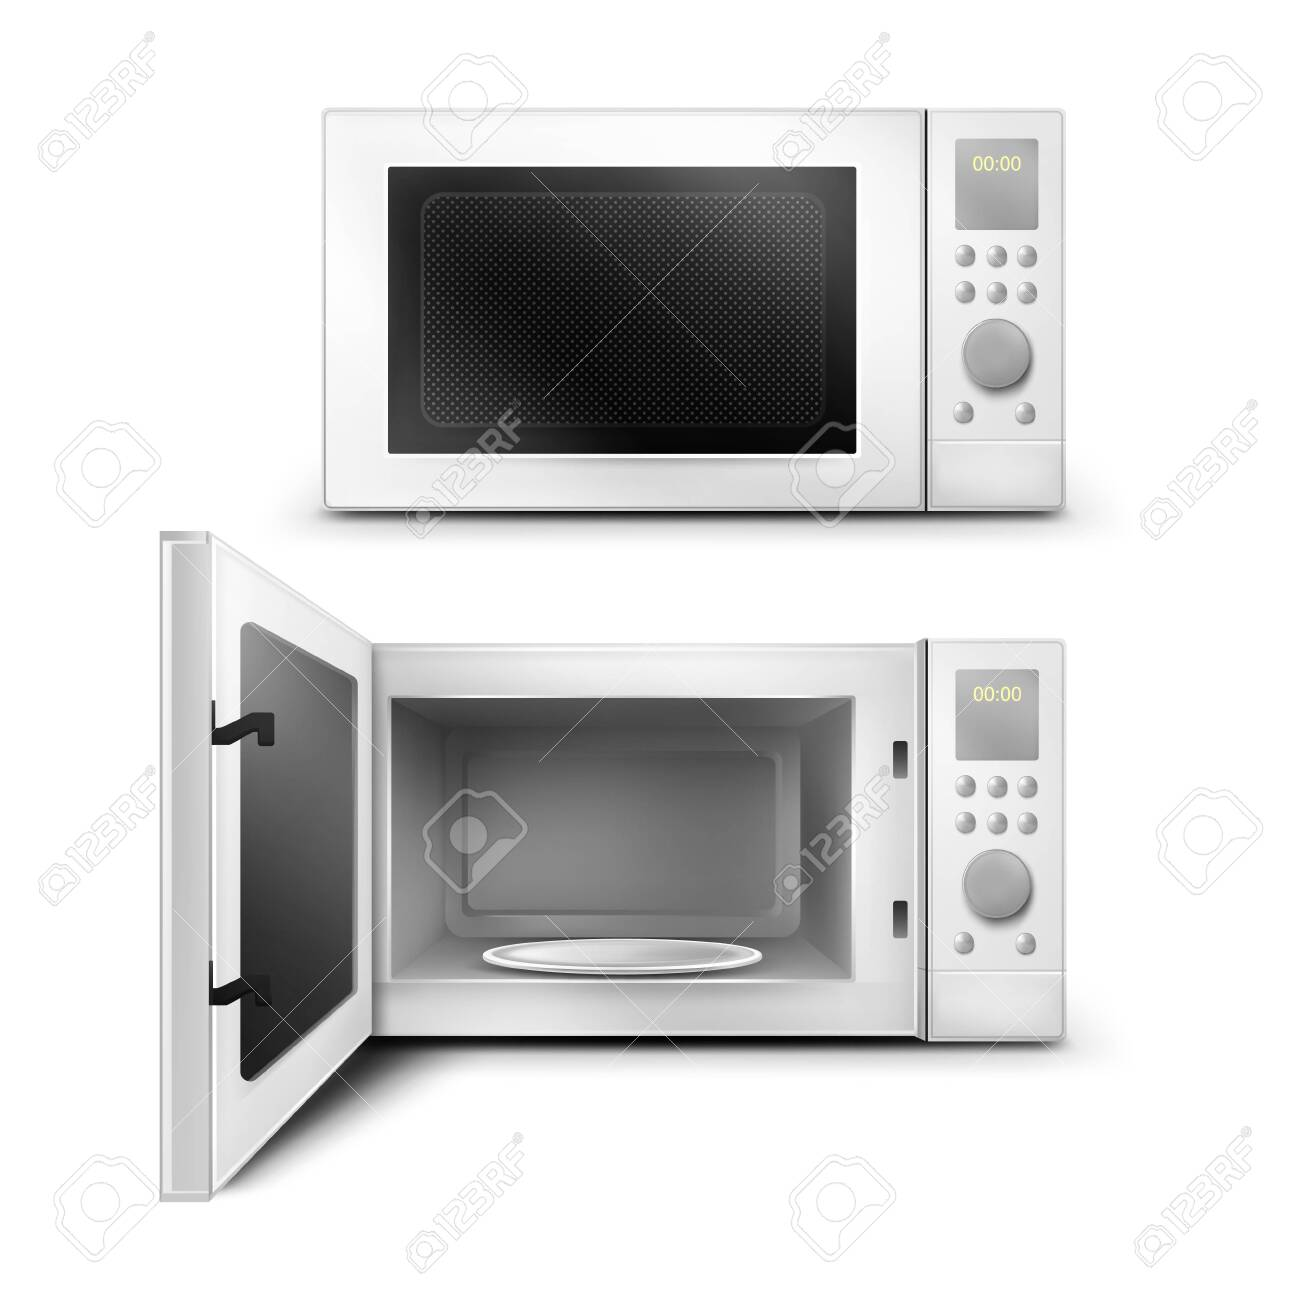 Vector 3d realistic white microwave oven with open and close door, with empty glass plate inside. Modern household appliance to cooking, defrosting and heating food. Front view isolated background. - 146803613